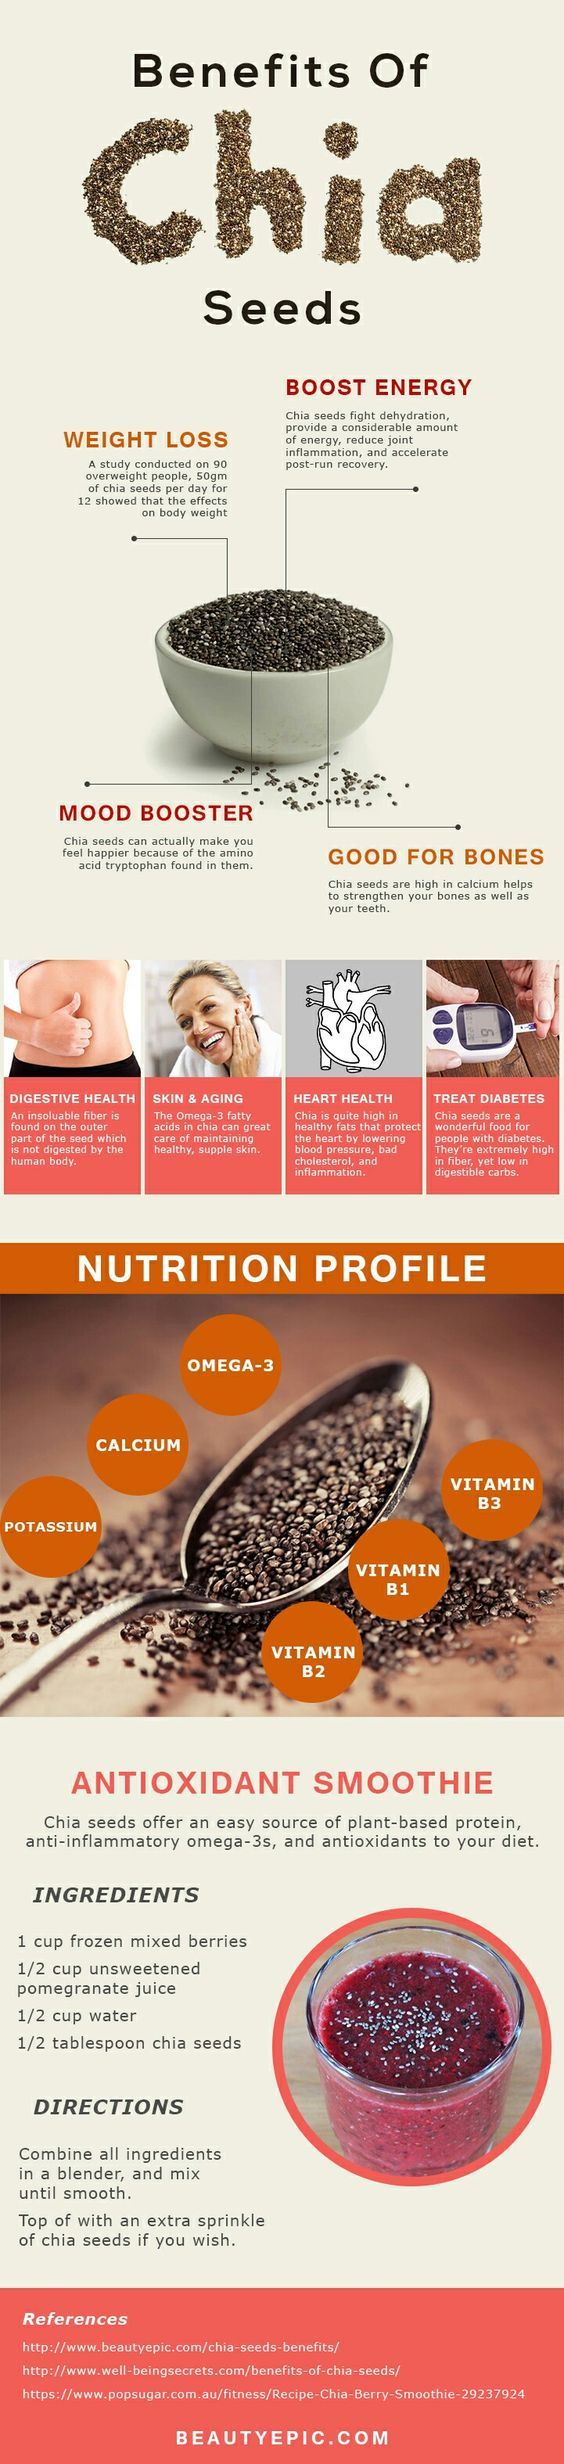 Chia seeds are great resource of Omega-3.Omega-3 is very important for maintaining good physical health.Here are some surprising Chia Seeds benefits